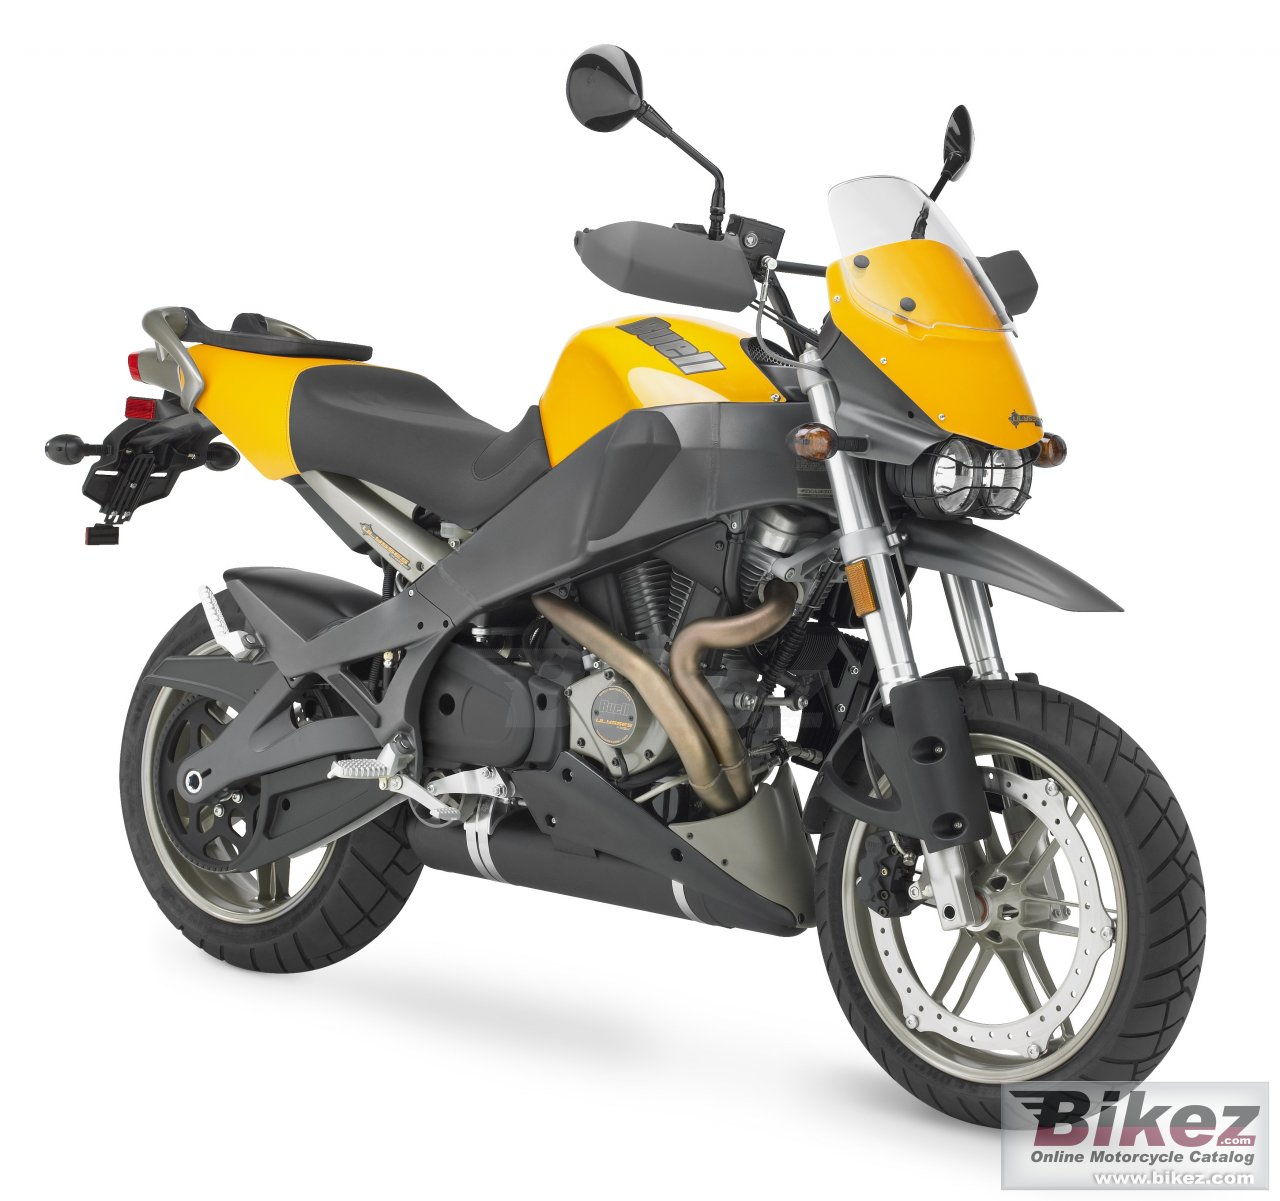 Big Buell ulysses xb12x picture and wallpaper from Bikez.com